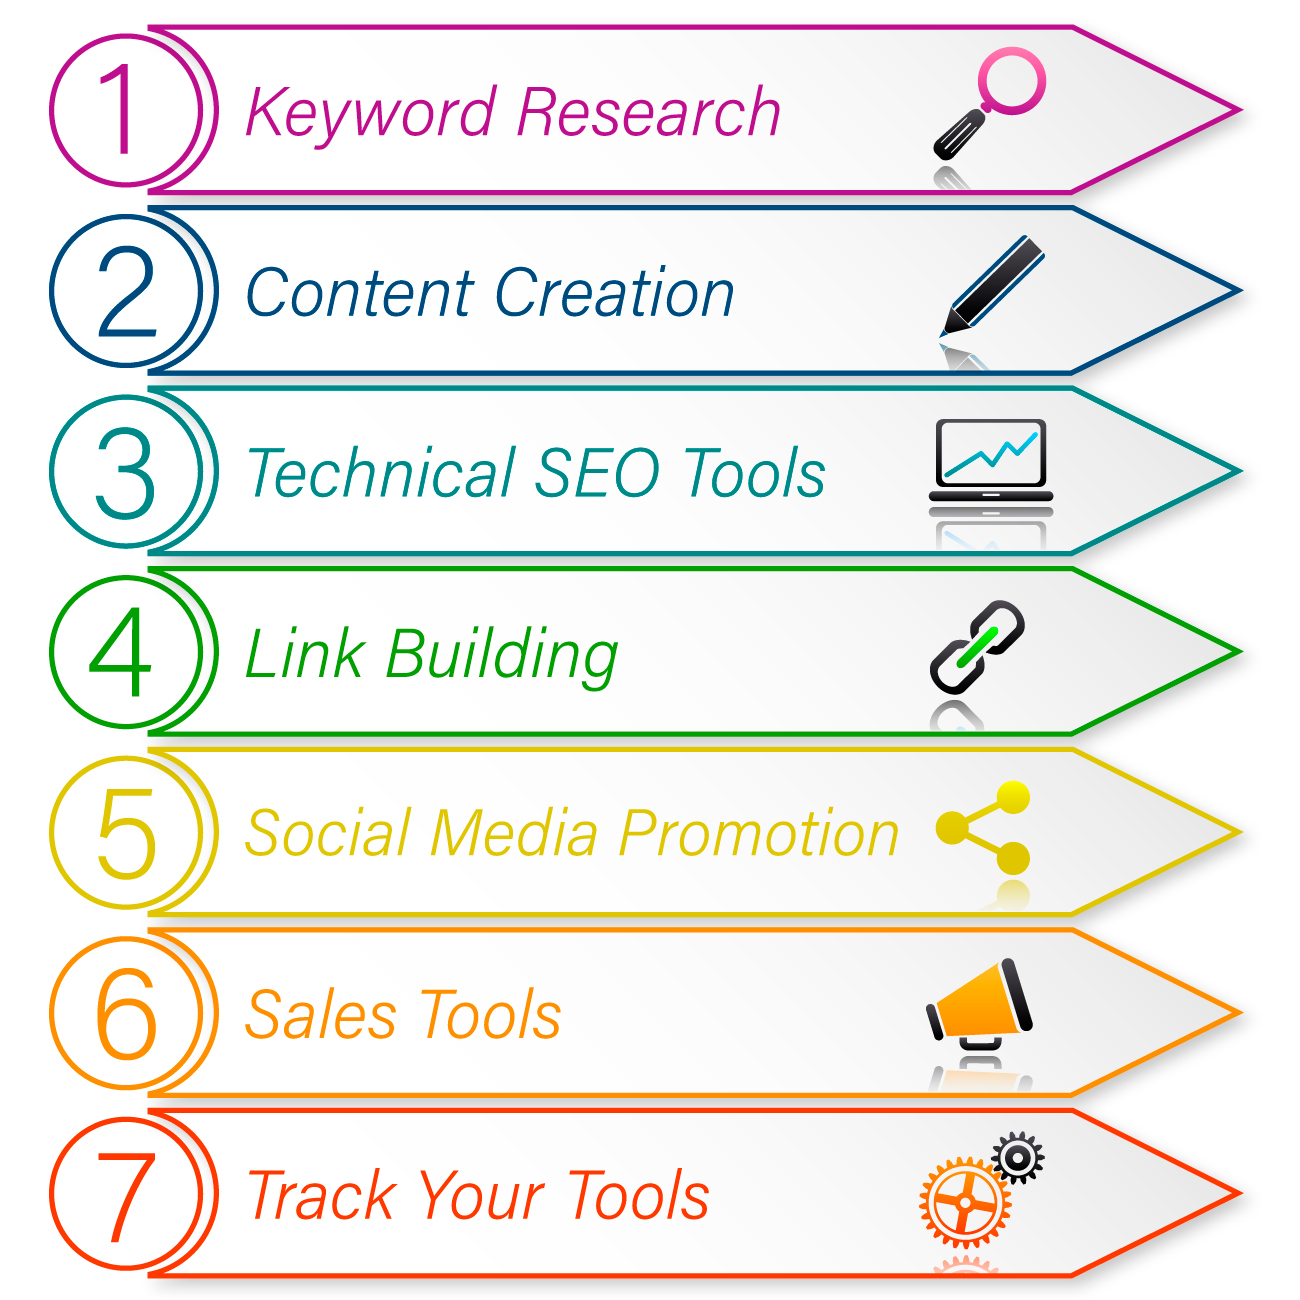 online marketing tools 7 step process graphic